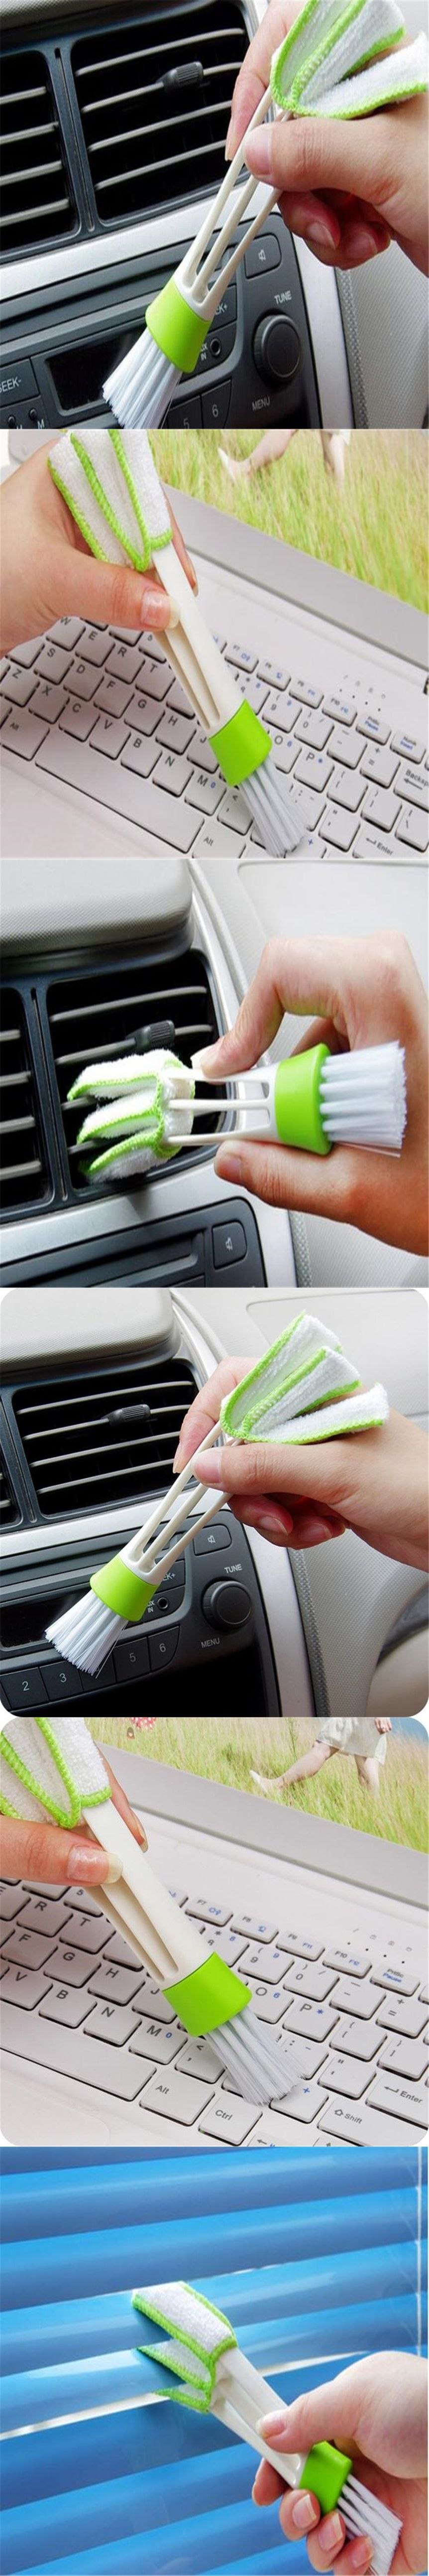 to how cleaner blinds clean